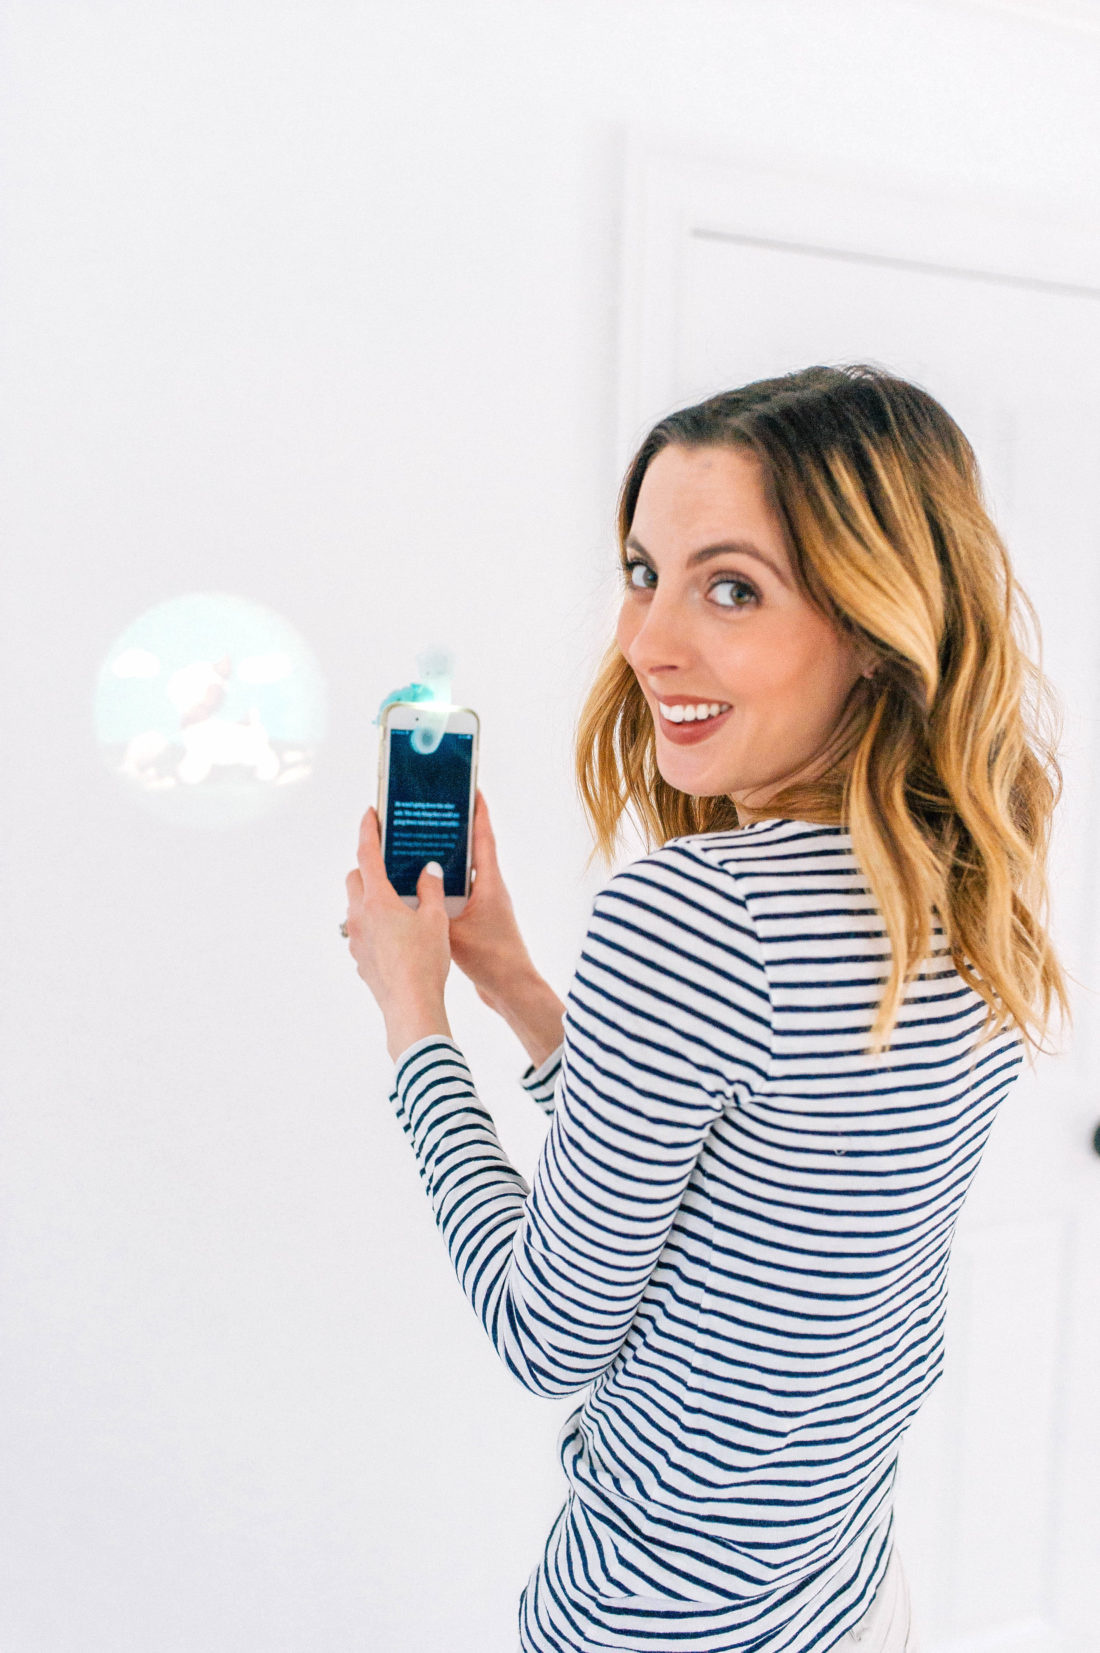 Eva Amurri Martino reads a story and projects images on to the wall with the Moonlite projector and app